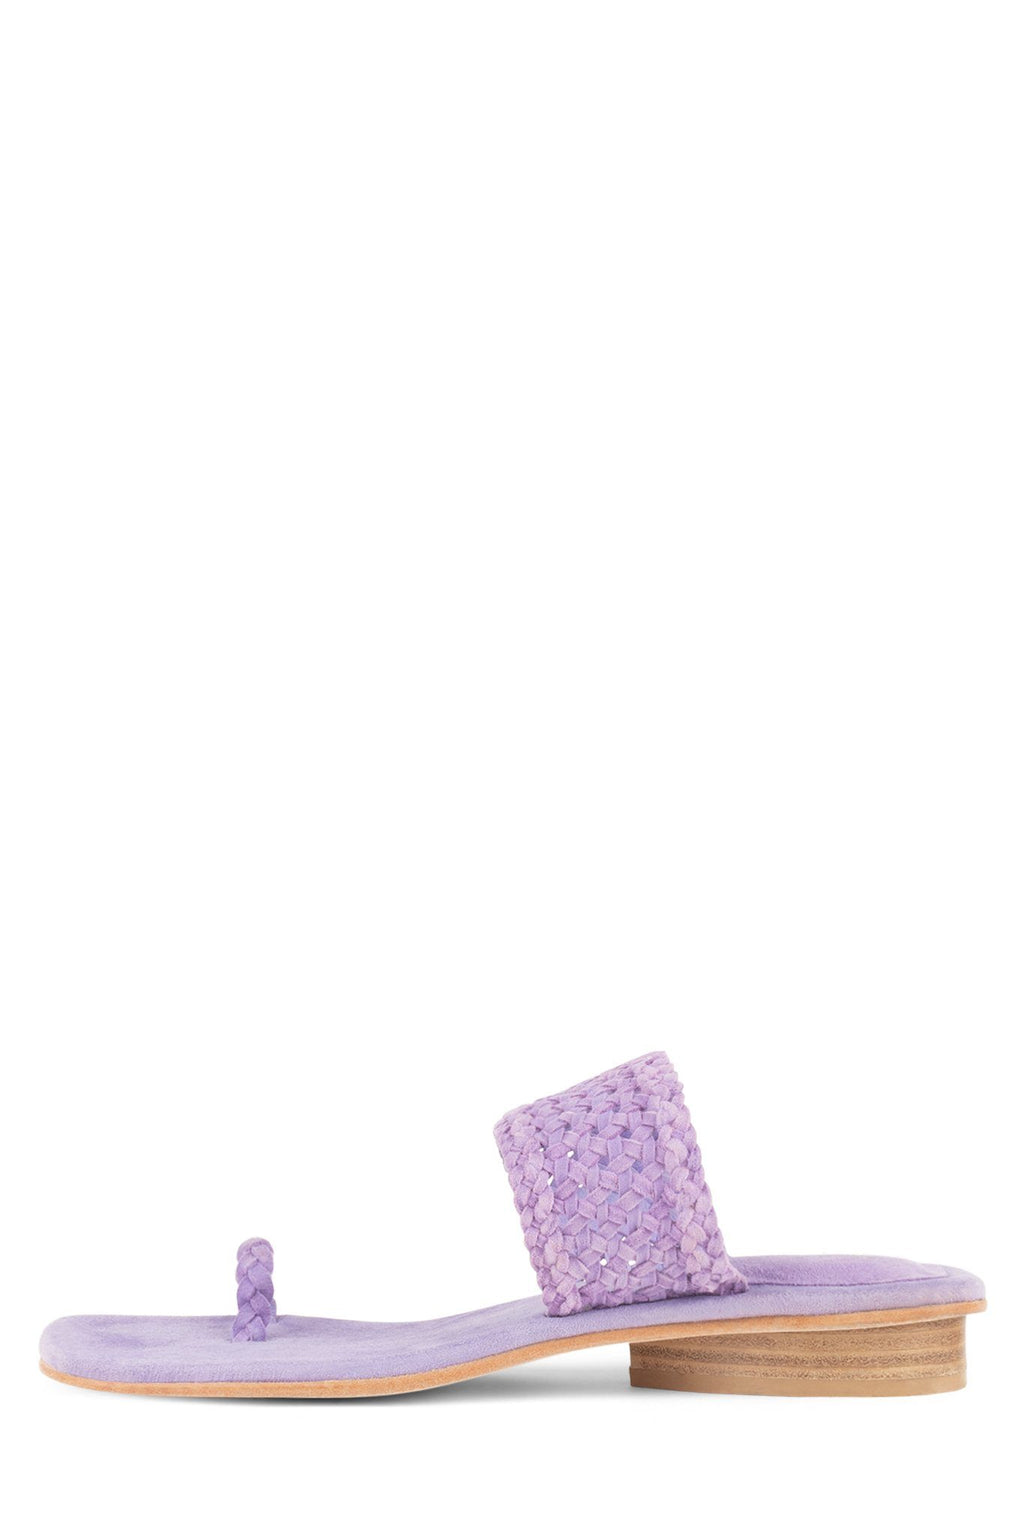 ALTHEA Flat Sandal Jeffrey Campbell Lilac Suede 6